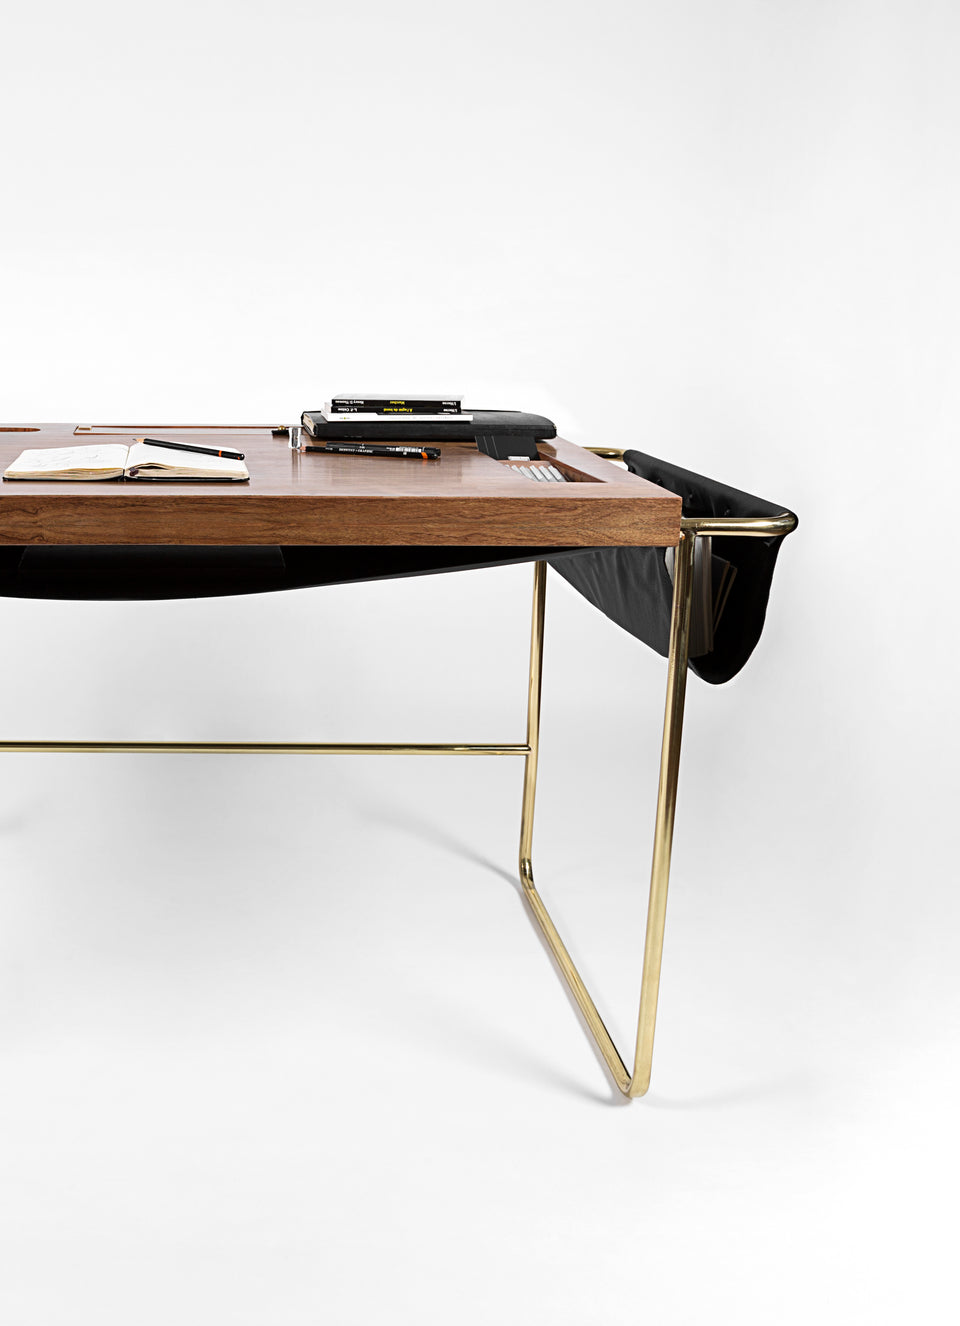 CASA.BLANCA office desk in solid walnut with brass & black leather detailing